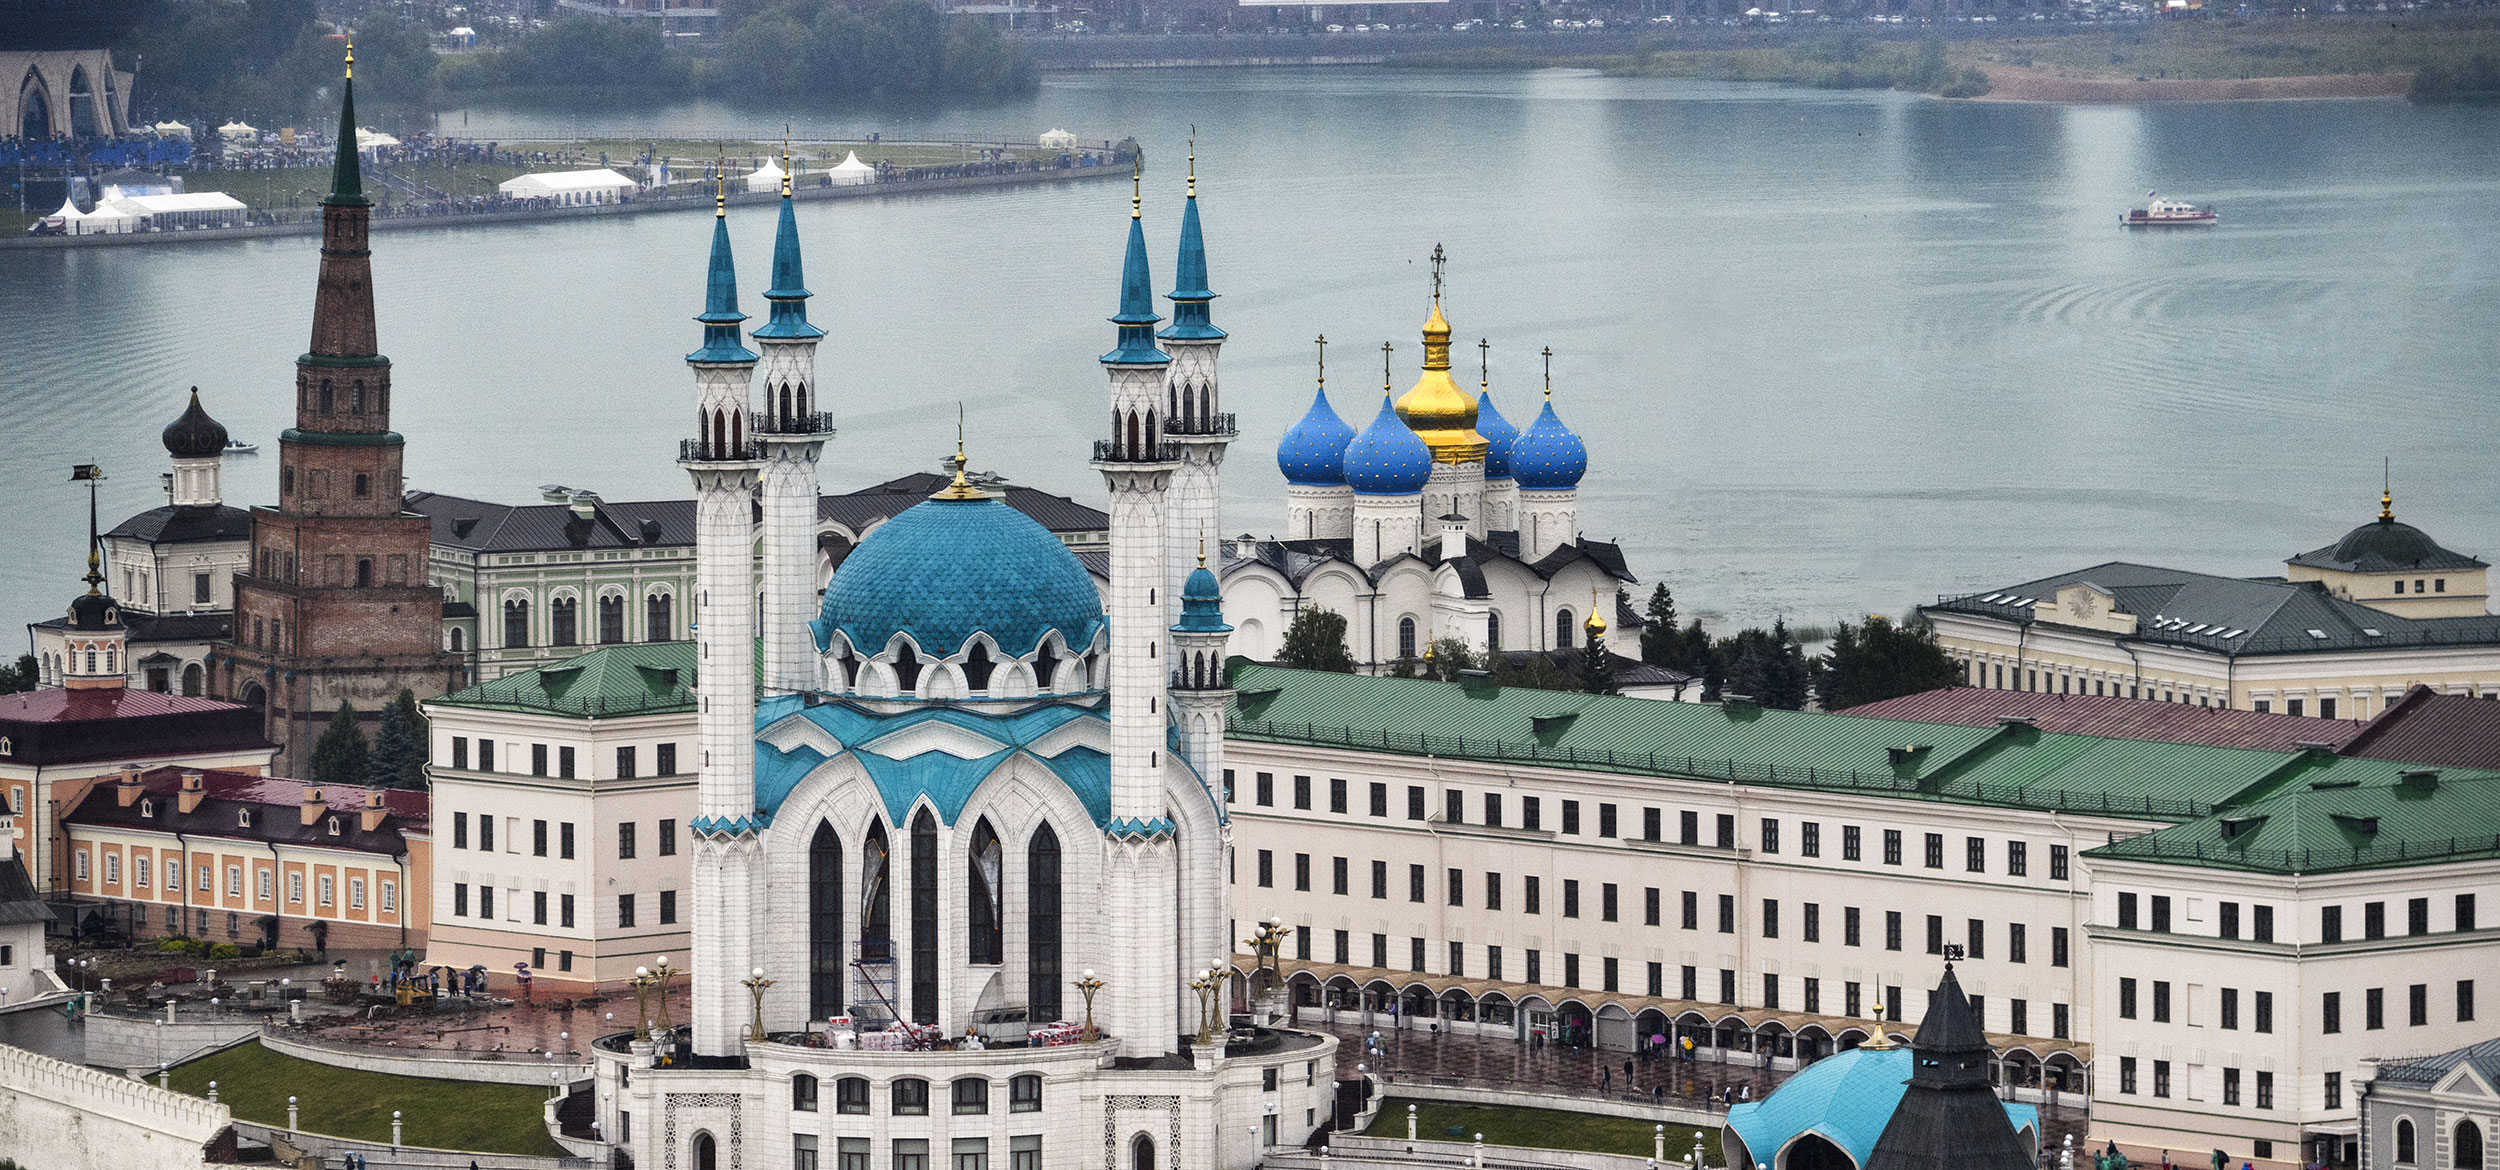 Teal spires of the Kazan Kremlin penetrate the sky with the confluence of the Volga and Kazanka rivers in the background in the city of Kazan, Russia.